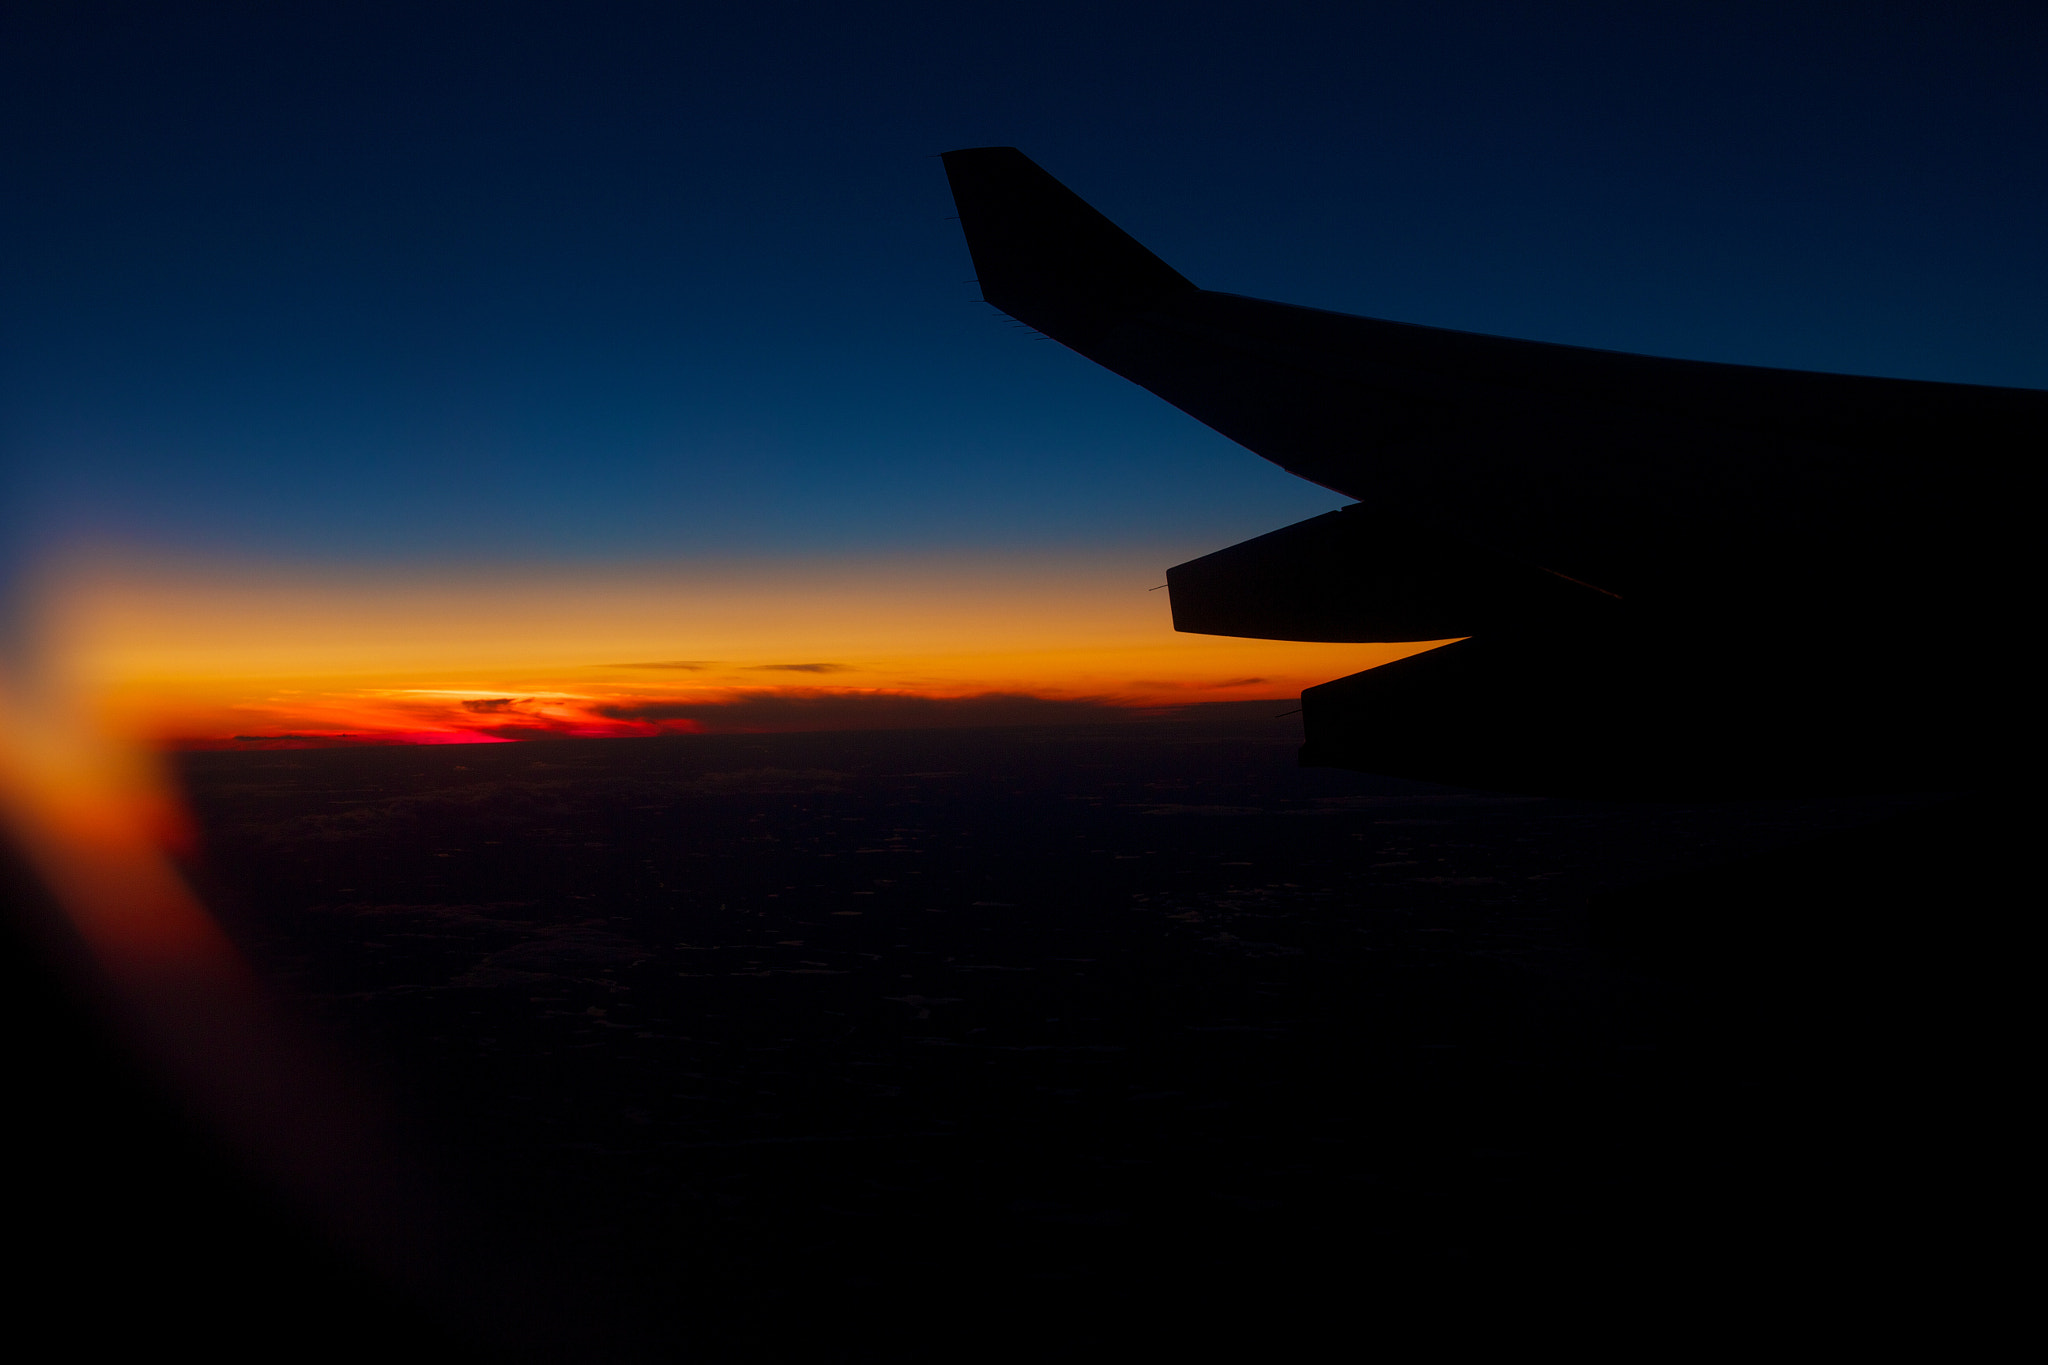 Photograph Sunset Over Greenland by Kerim Karahan on 500px